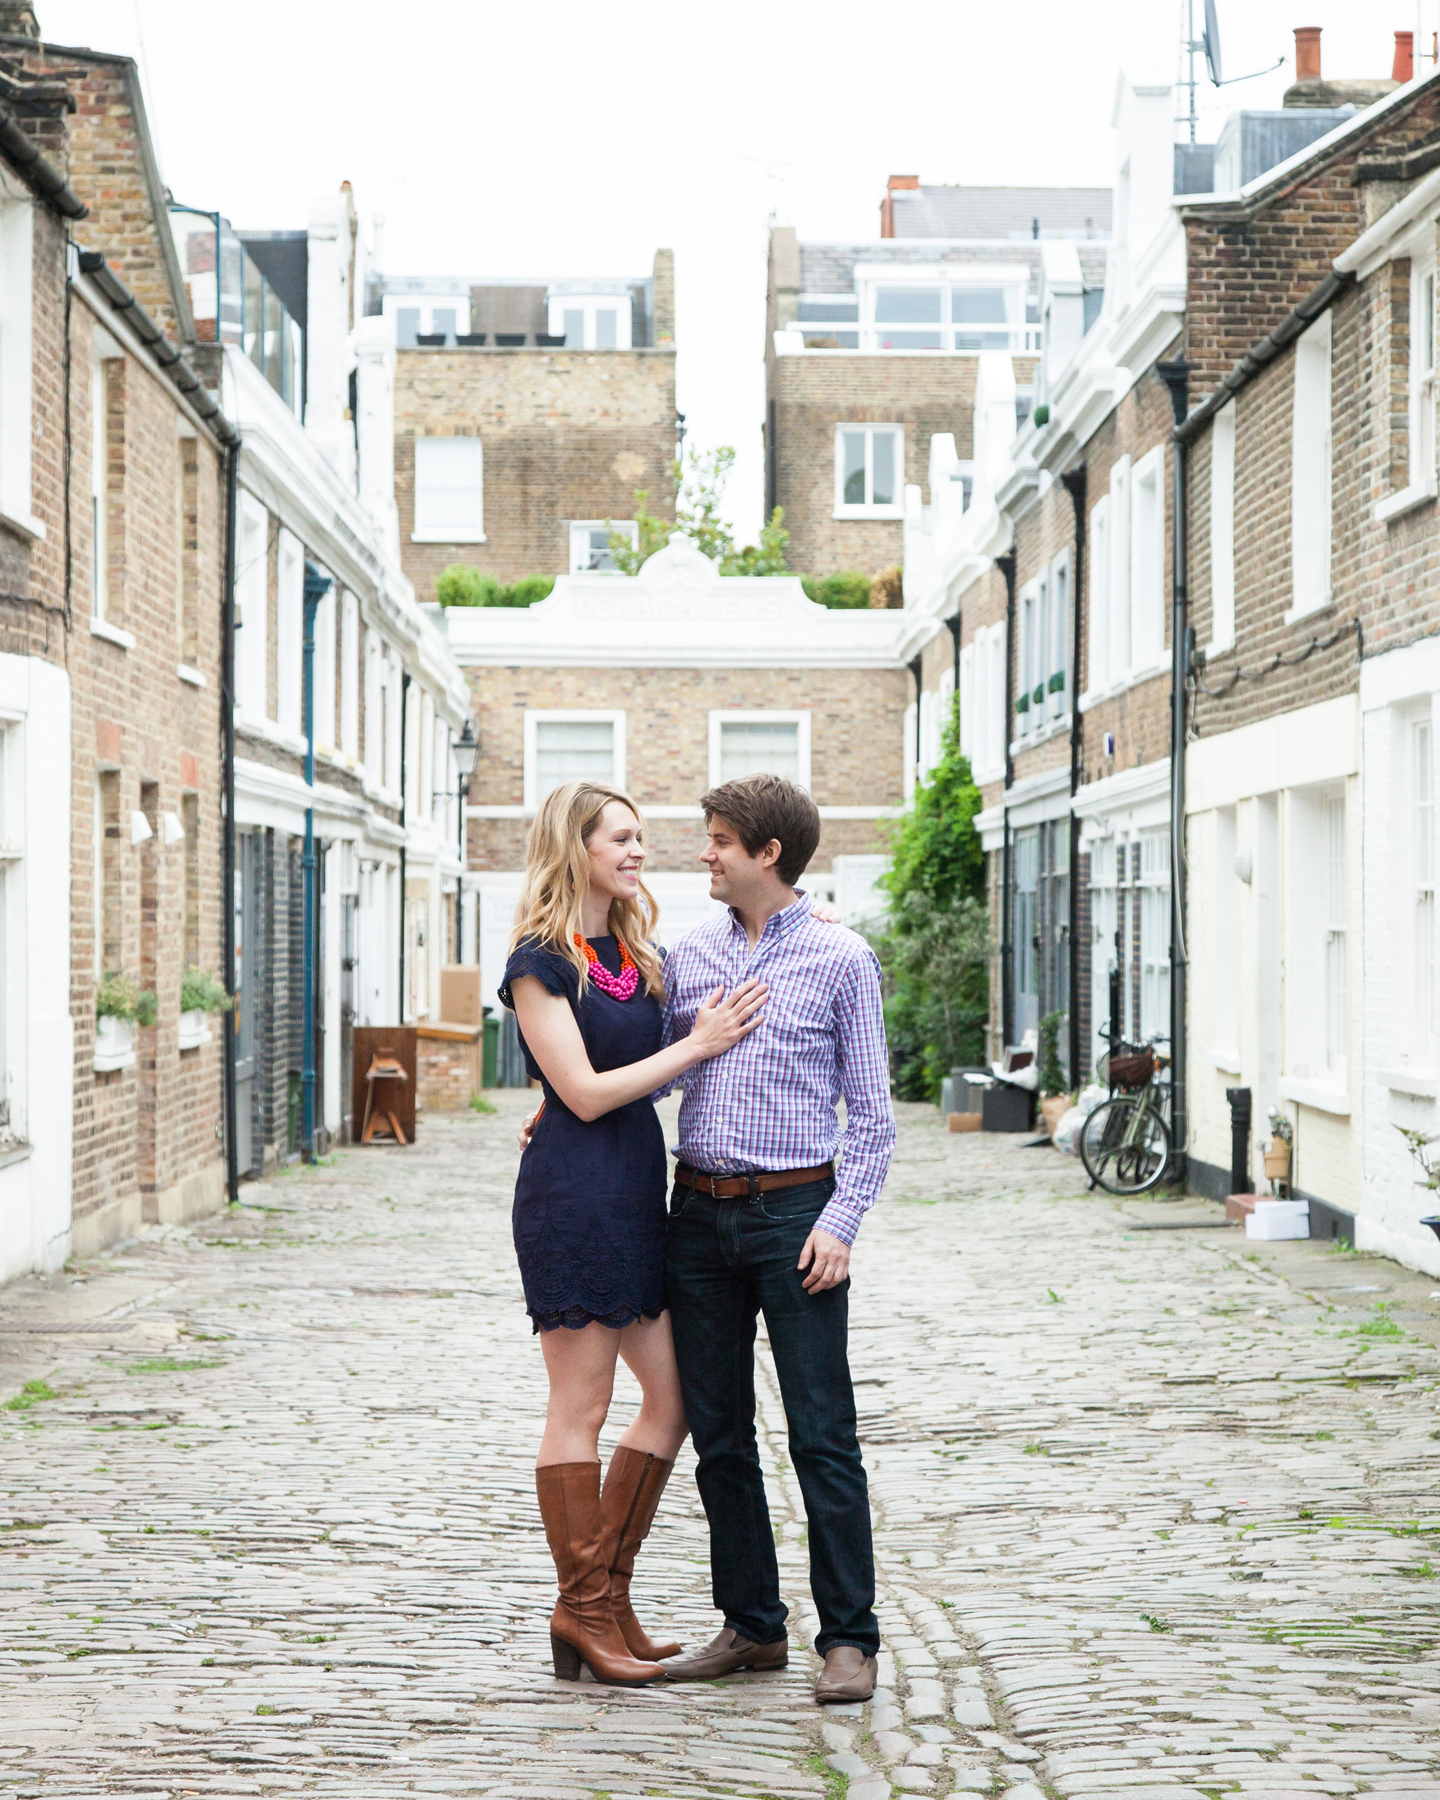 London photography, couple portrait, Notting Hill